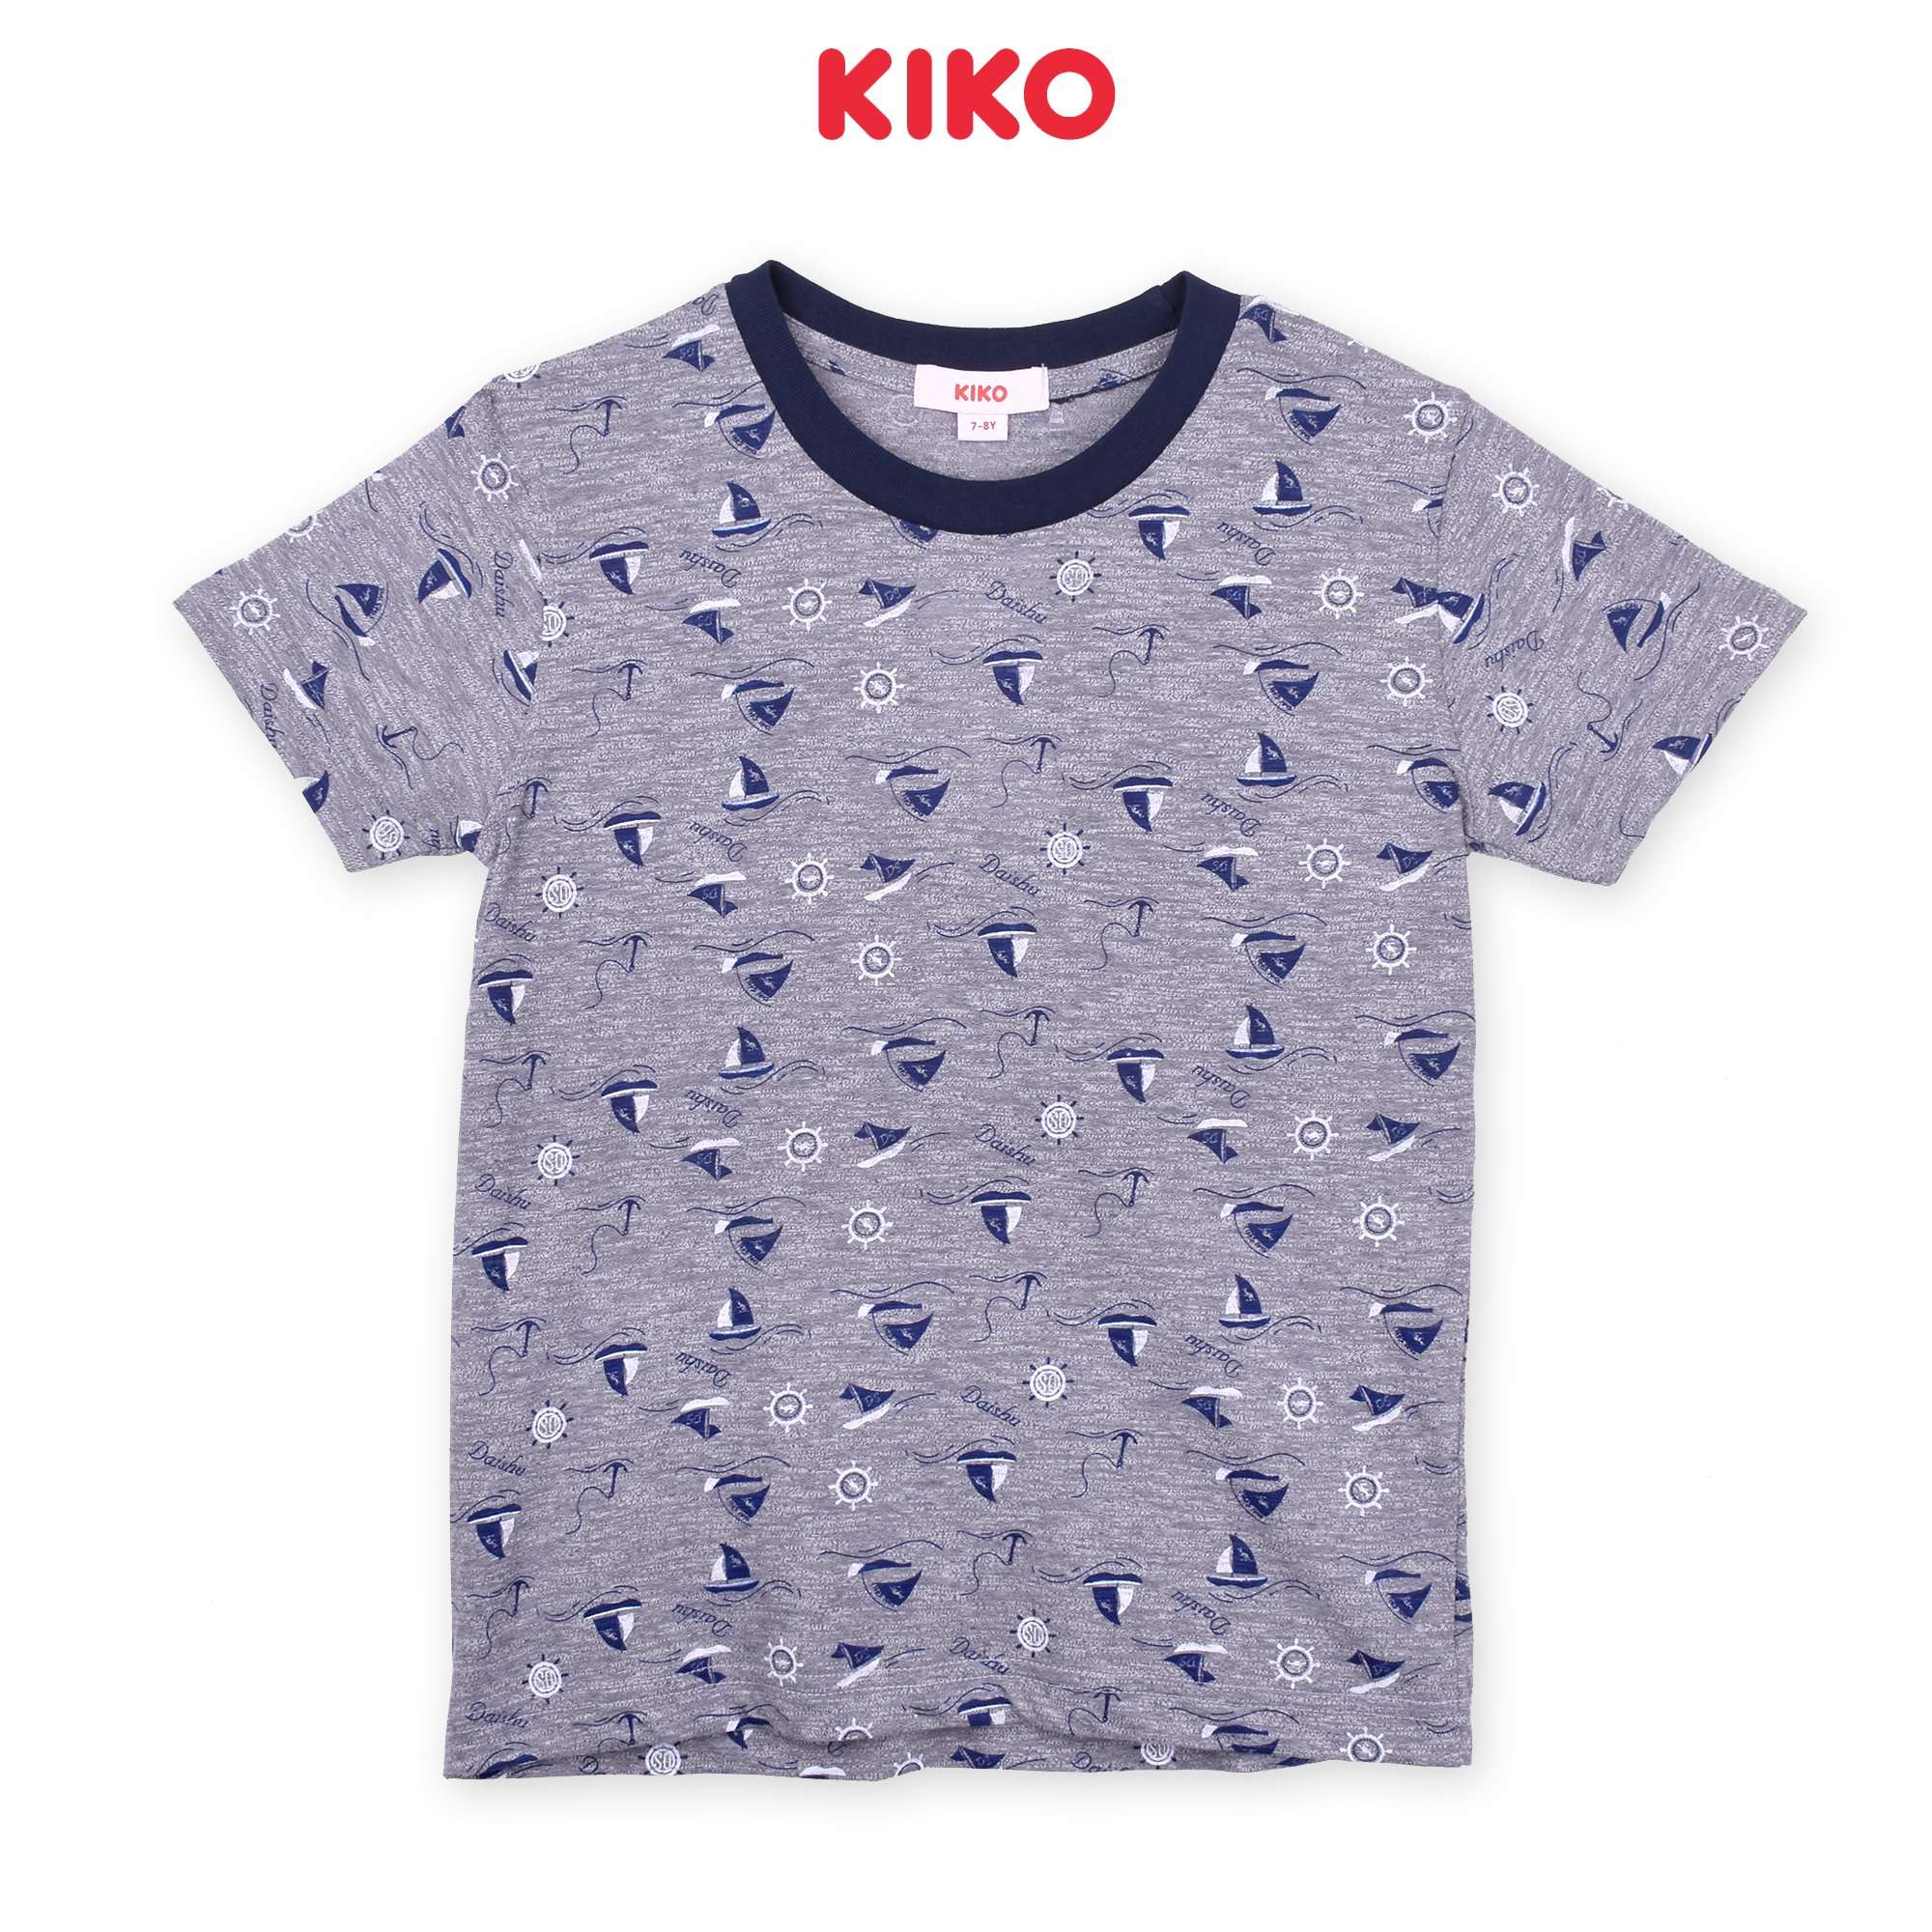 KIKO Boy Short Sleeve Tee - Grey  K923103-1110-G5 : Buy KIKO online at CMG.MY